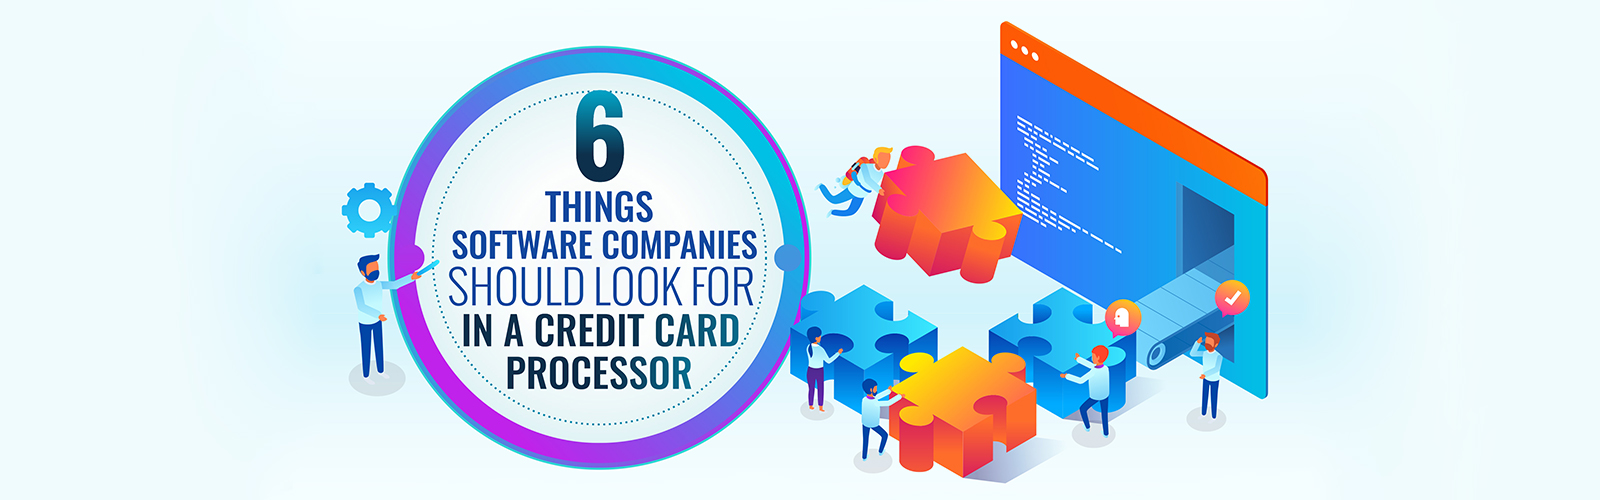 6-Things-Software-Companies-Should-Look-for-in-a-Credit-Card-Processor-Banner